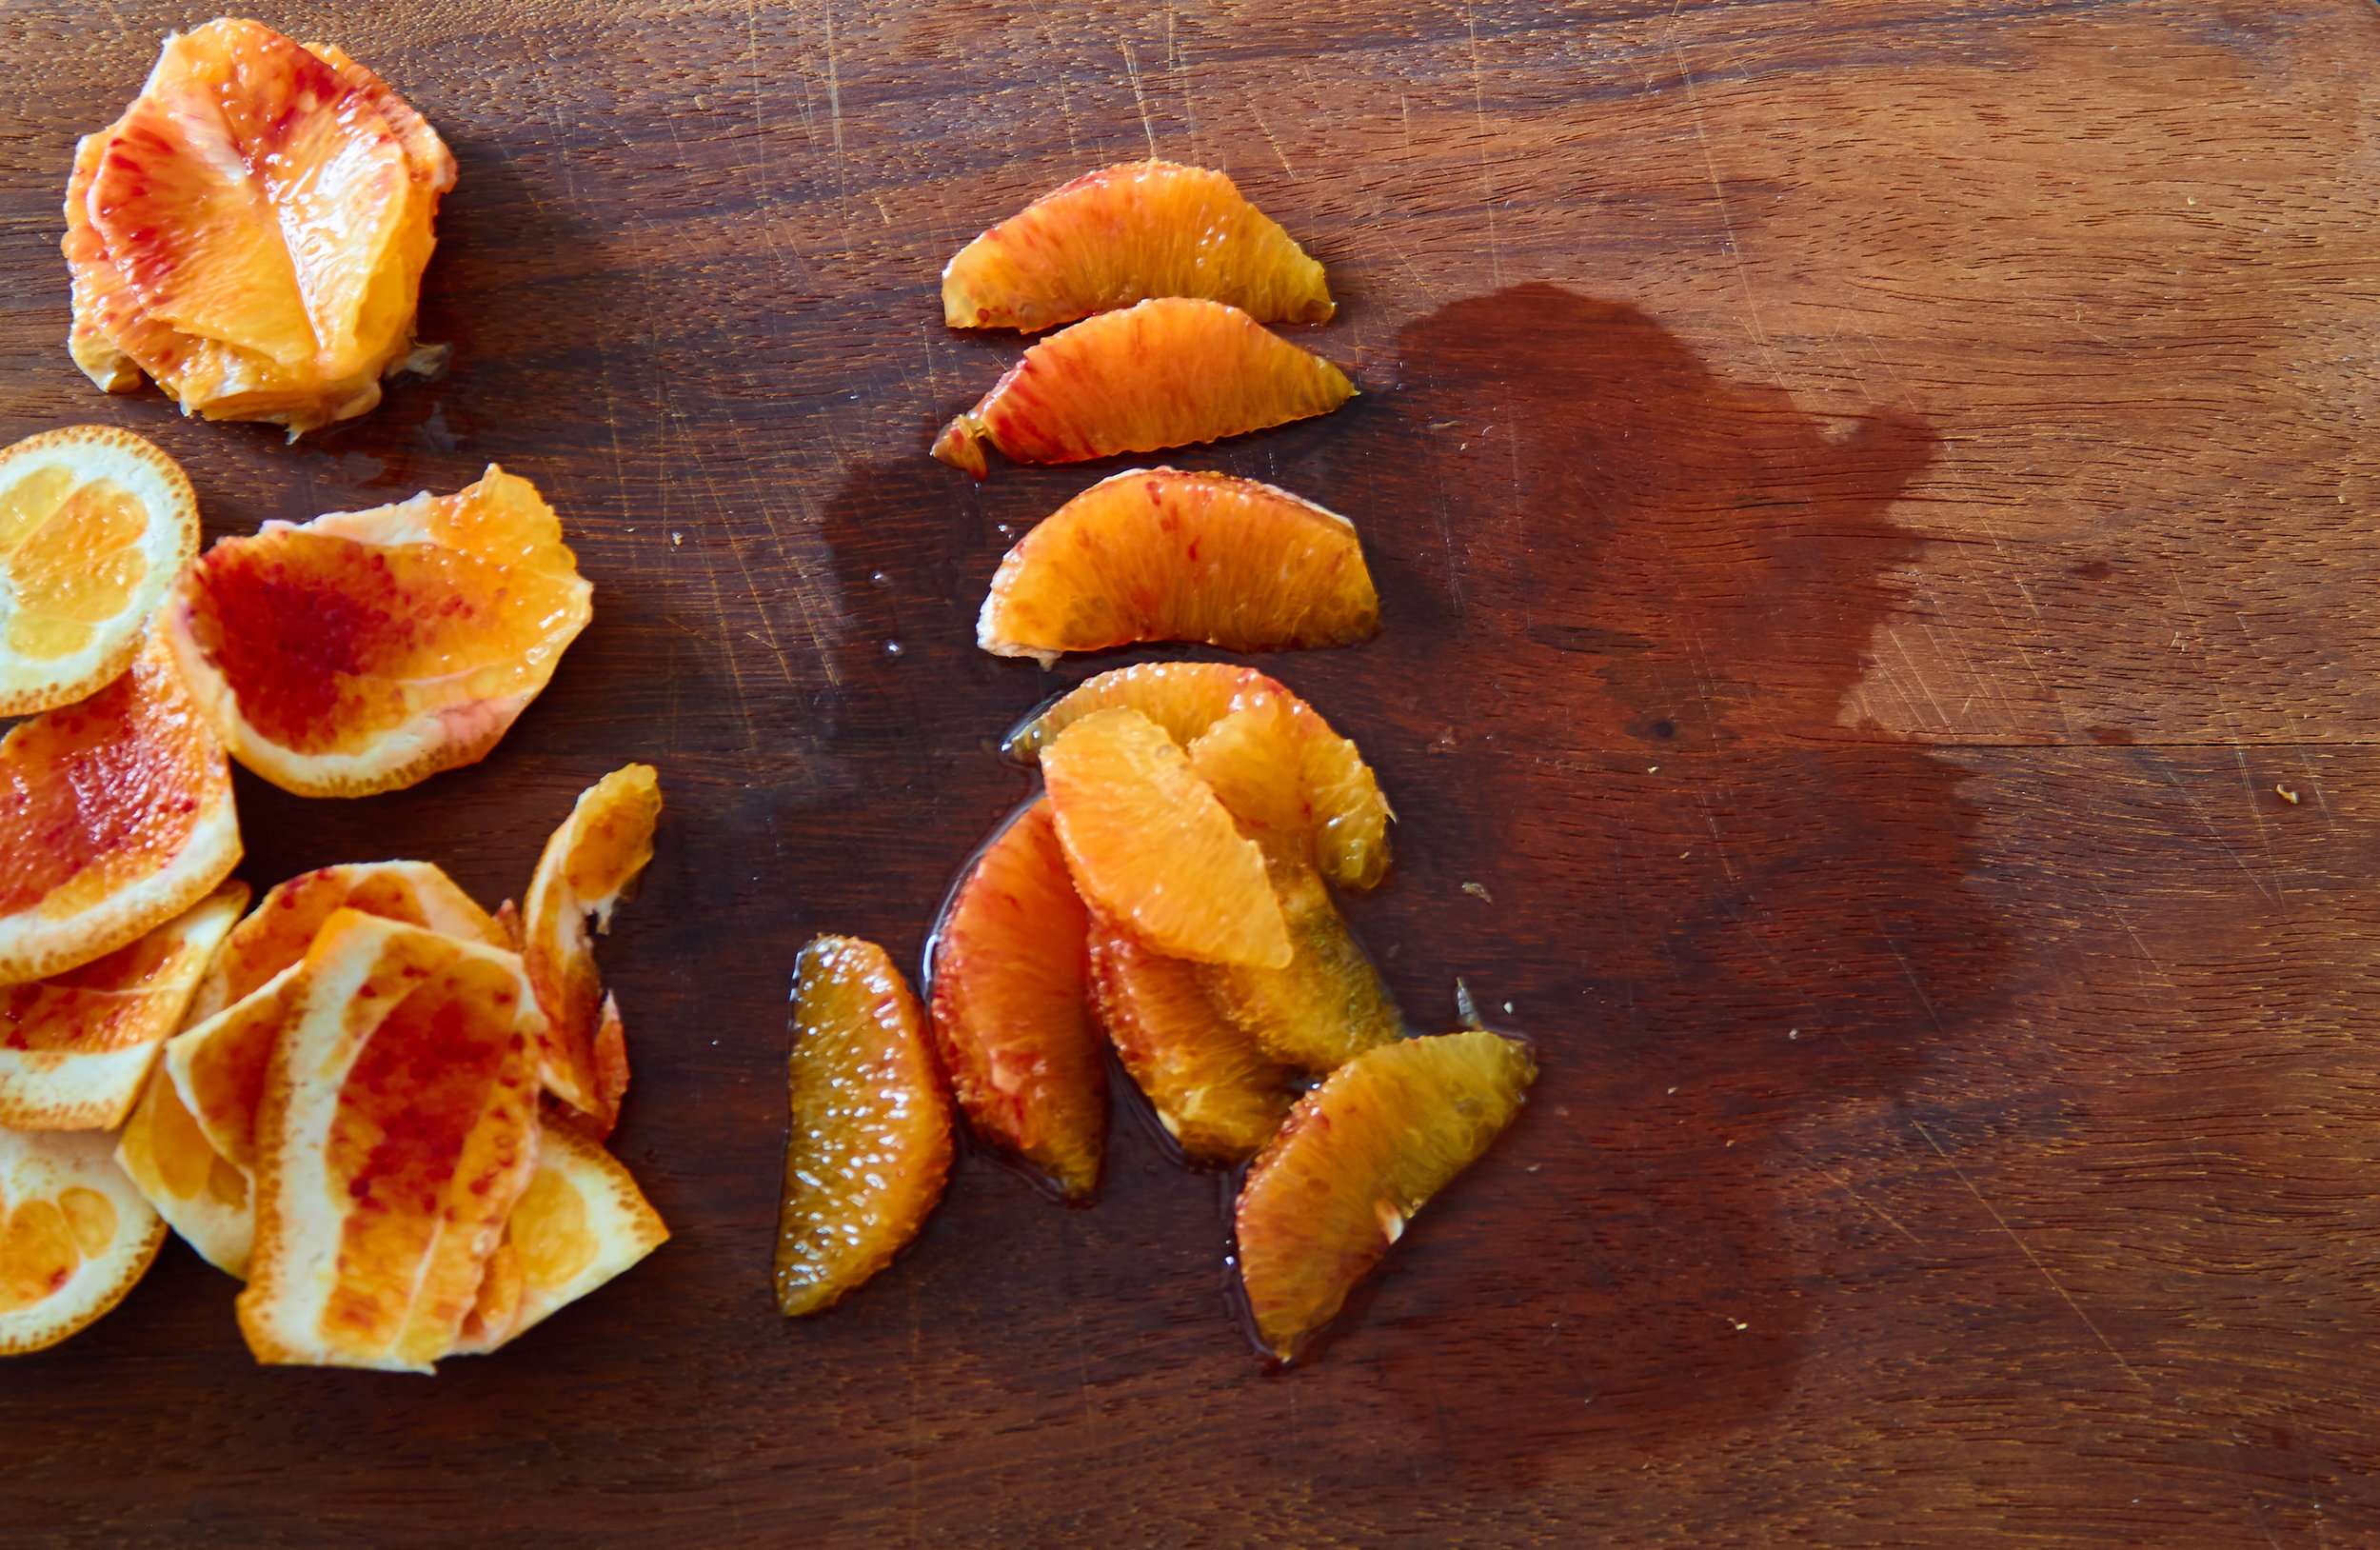 Blood Orange, Fennel and Pomegranate Salad - slicing and supreming the oranges  | In Carina's Kitchen